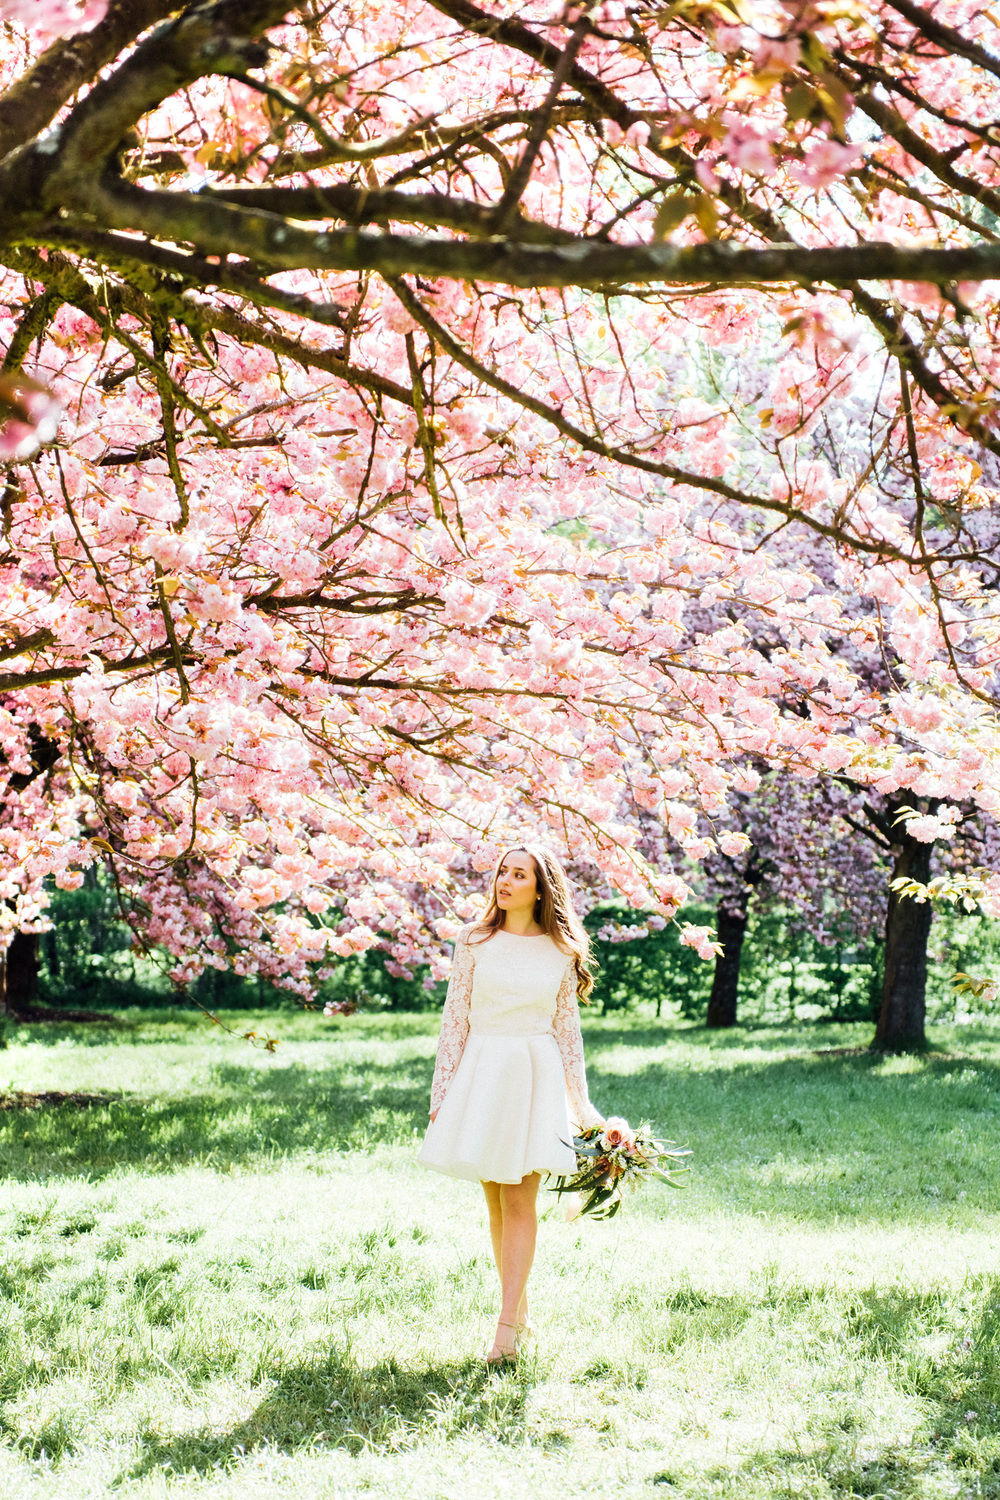 010-cherry-blossom-styled-bridal-shoot-paris-france.jpg